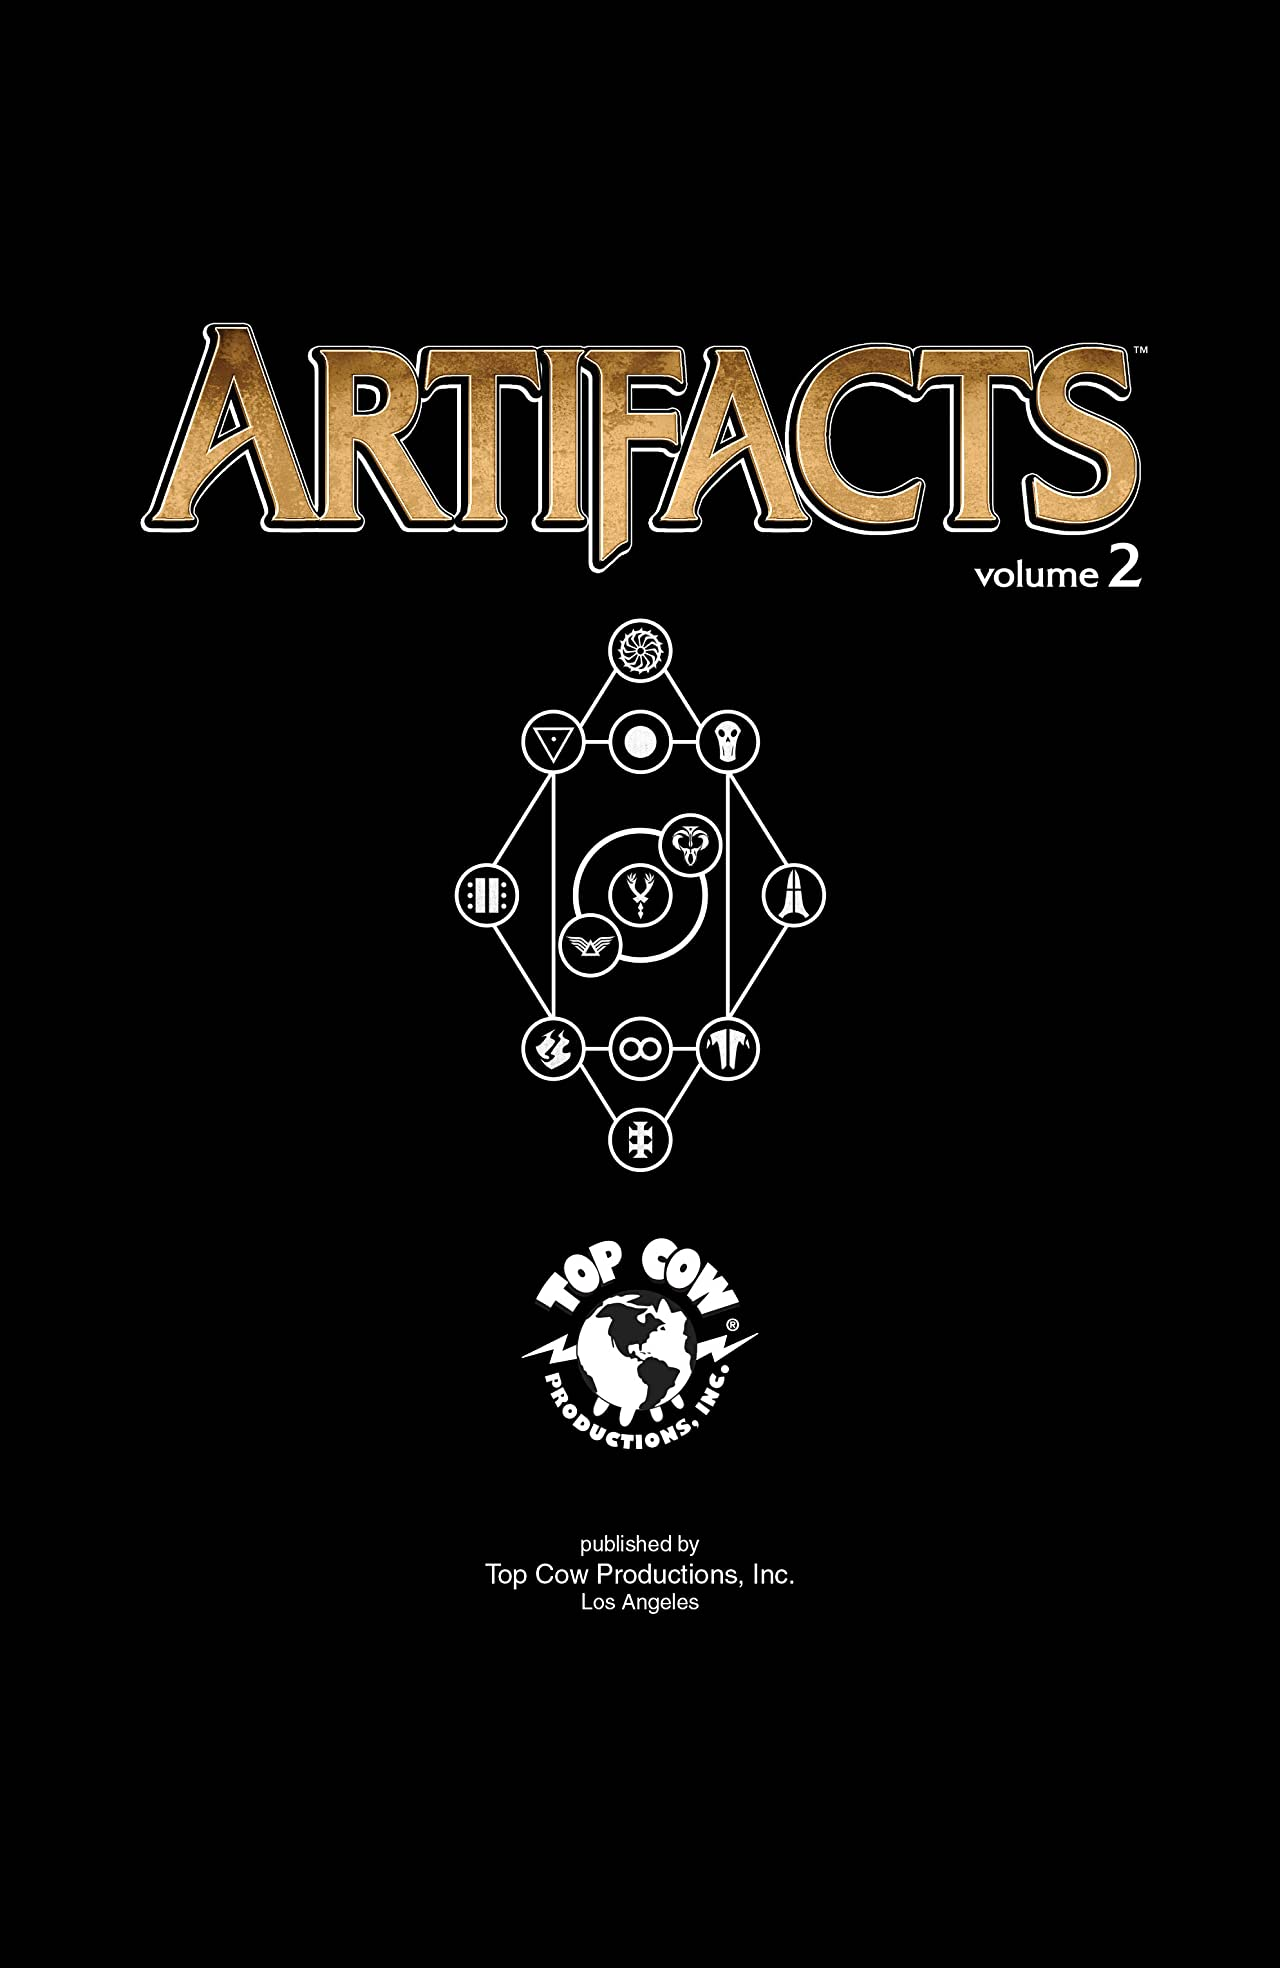 Artifacts Vol. 2